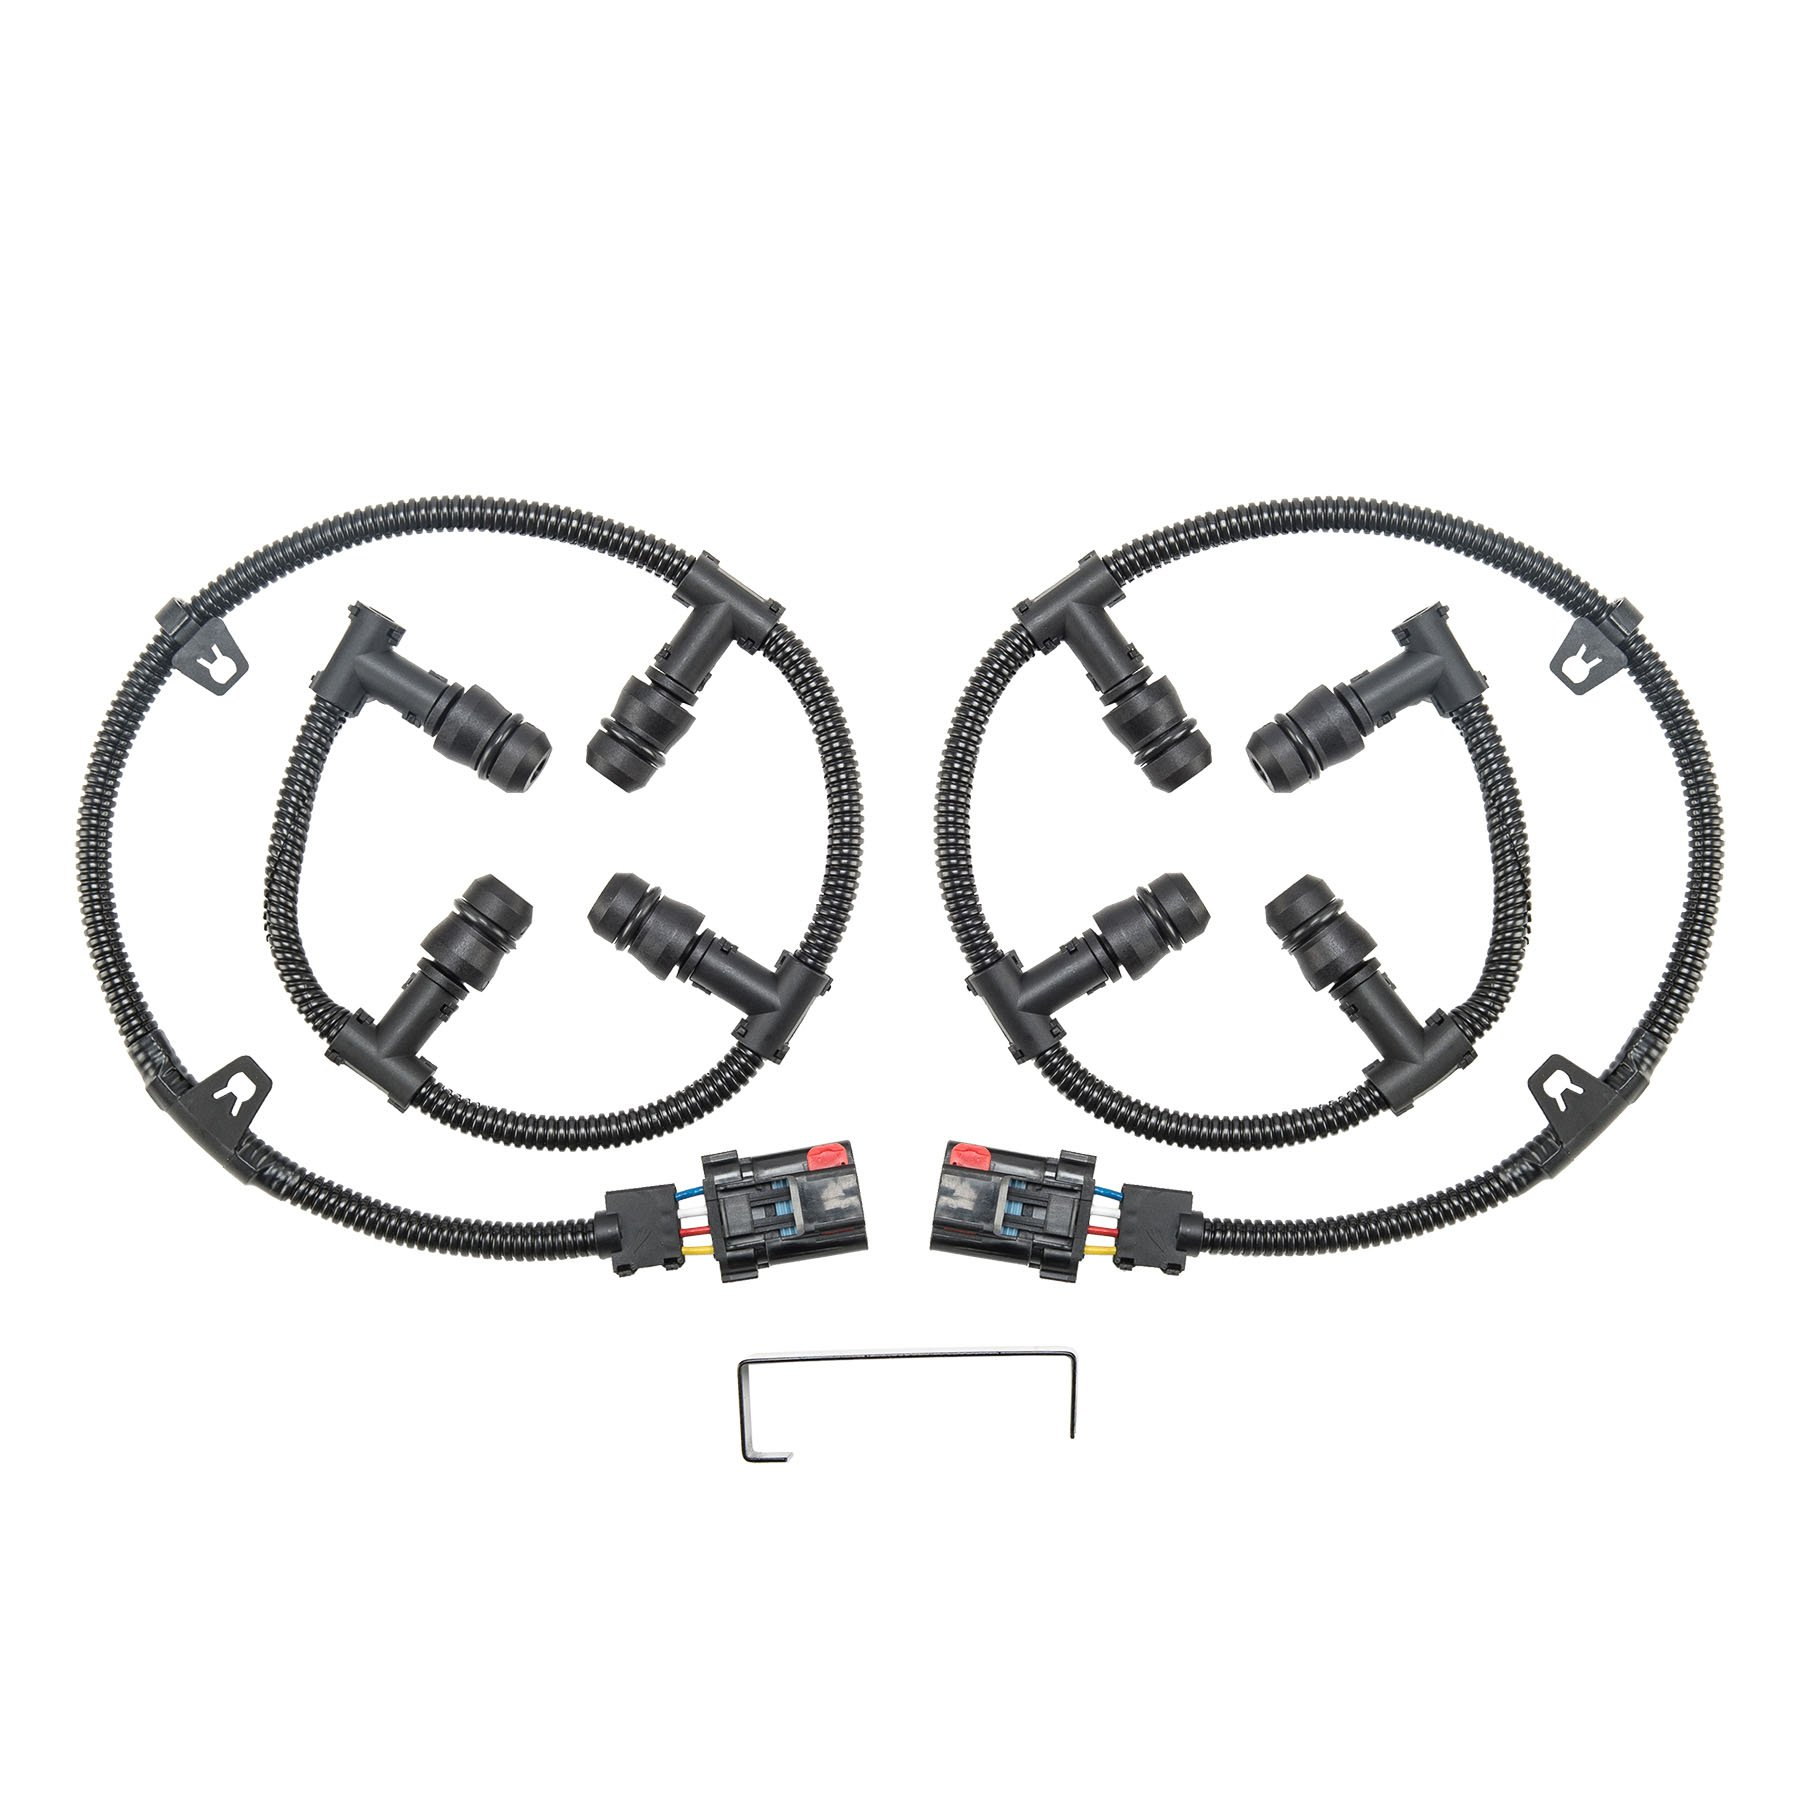 engine wire harness amazon com 98 Chevy Wiring Harness Diagram ford 6 0 glow plug connector wire harness kit (left \u0026 right) with removal tool